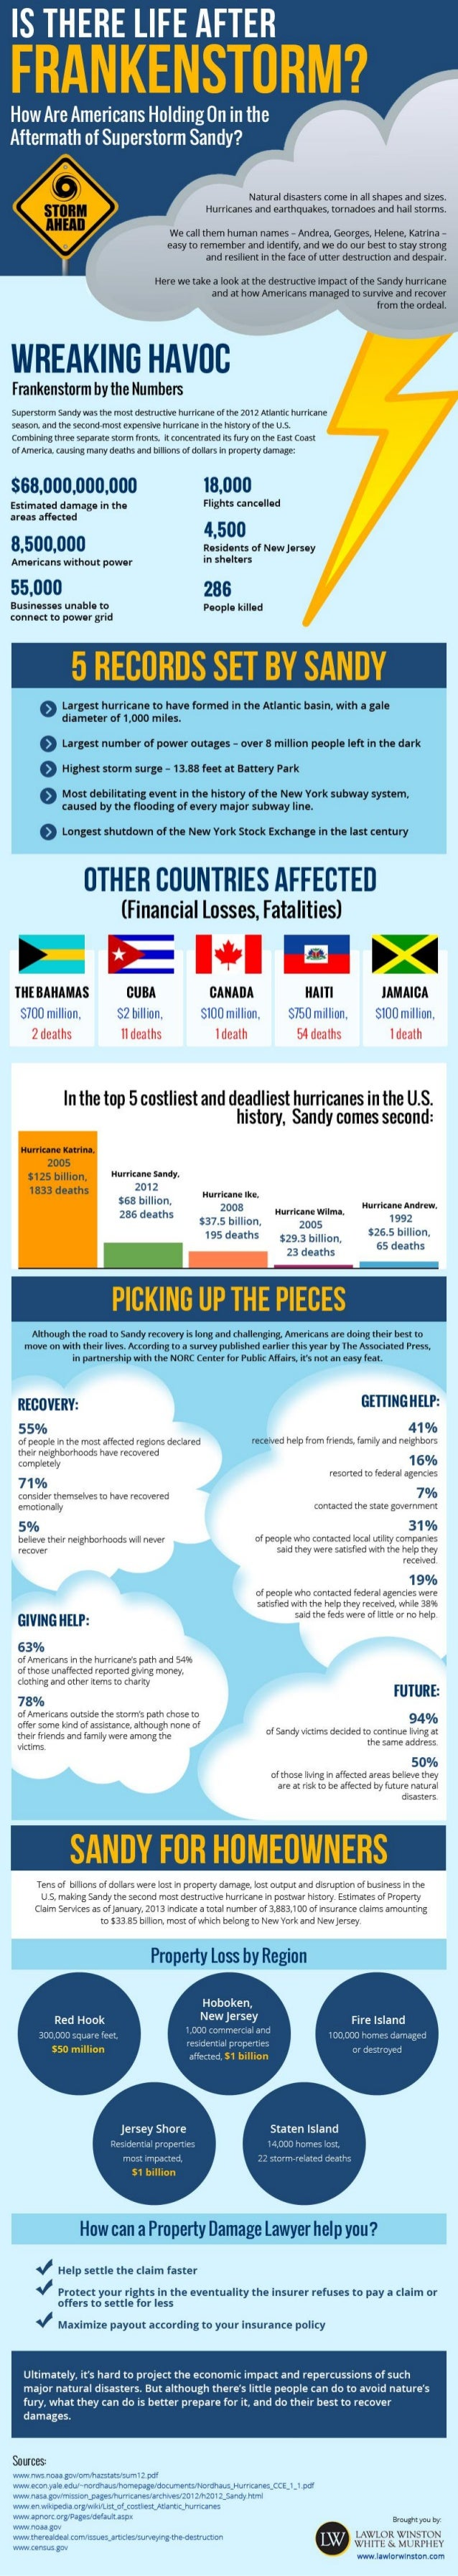 Is There Life After Frankenstorm?